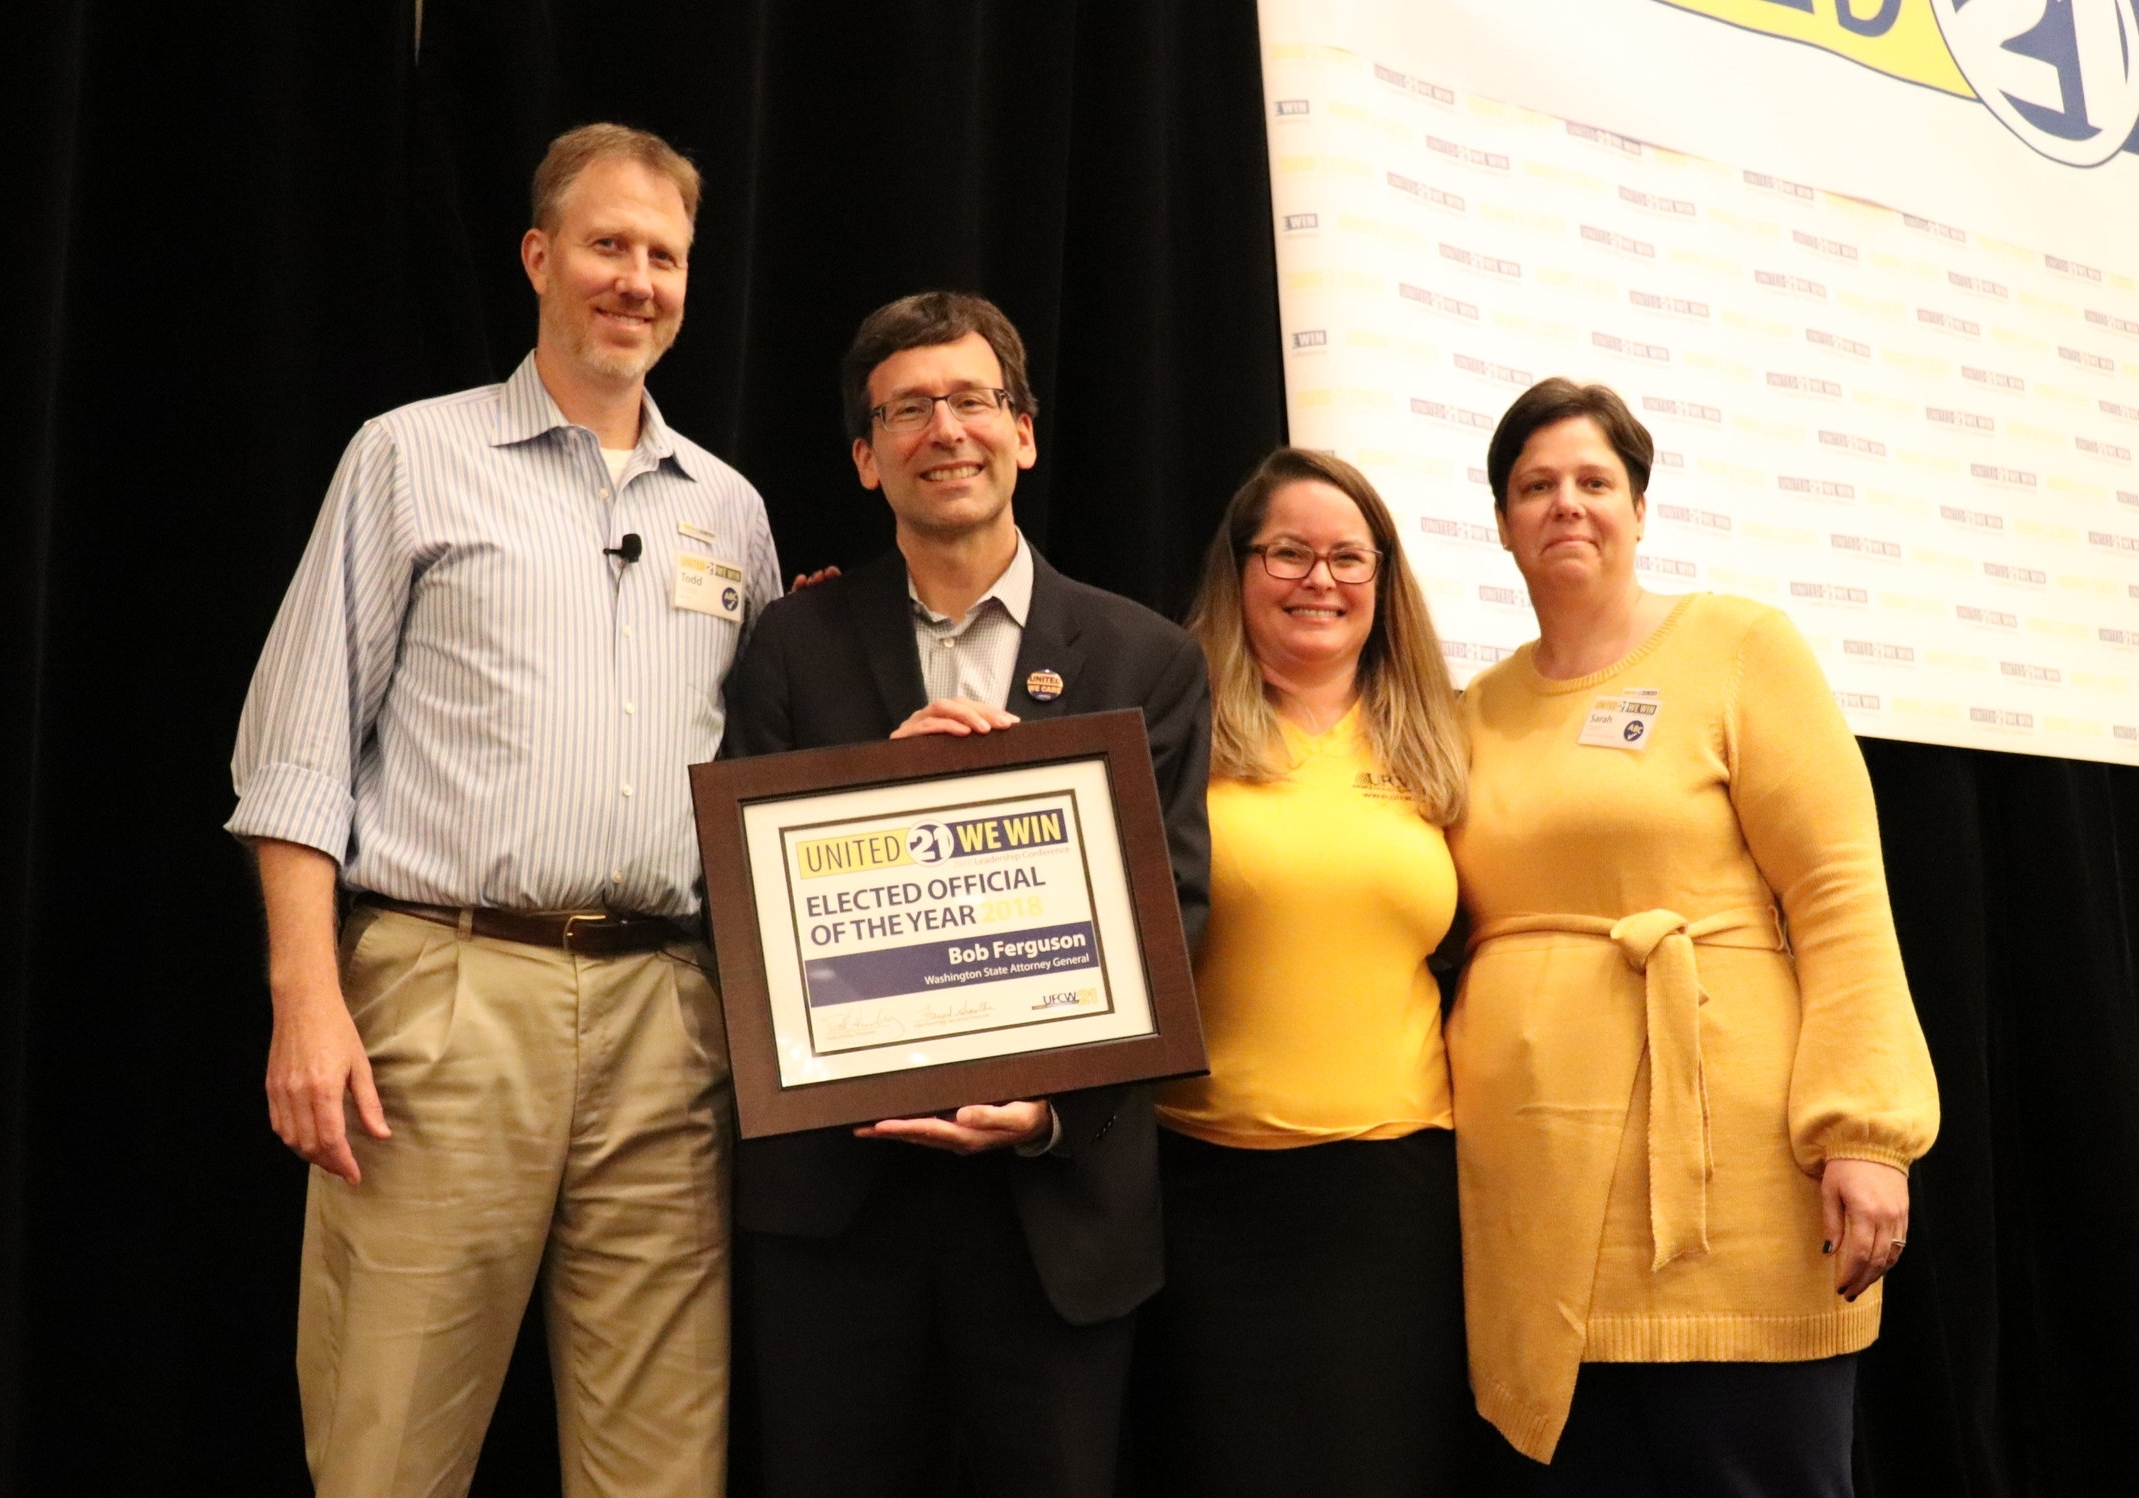 Elected Official of the Year Award winner WA State Attorney General Bob Ferguson